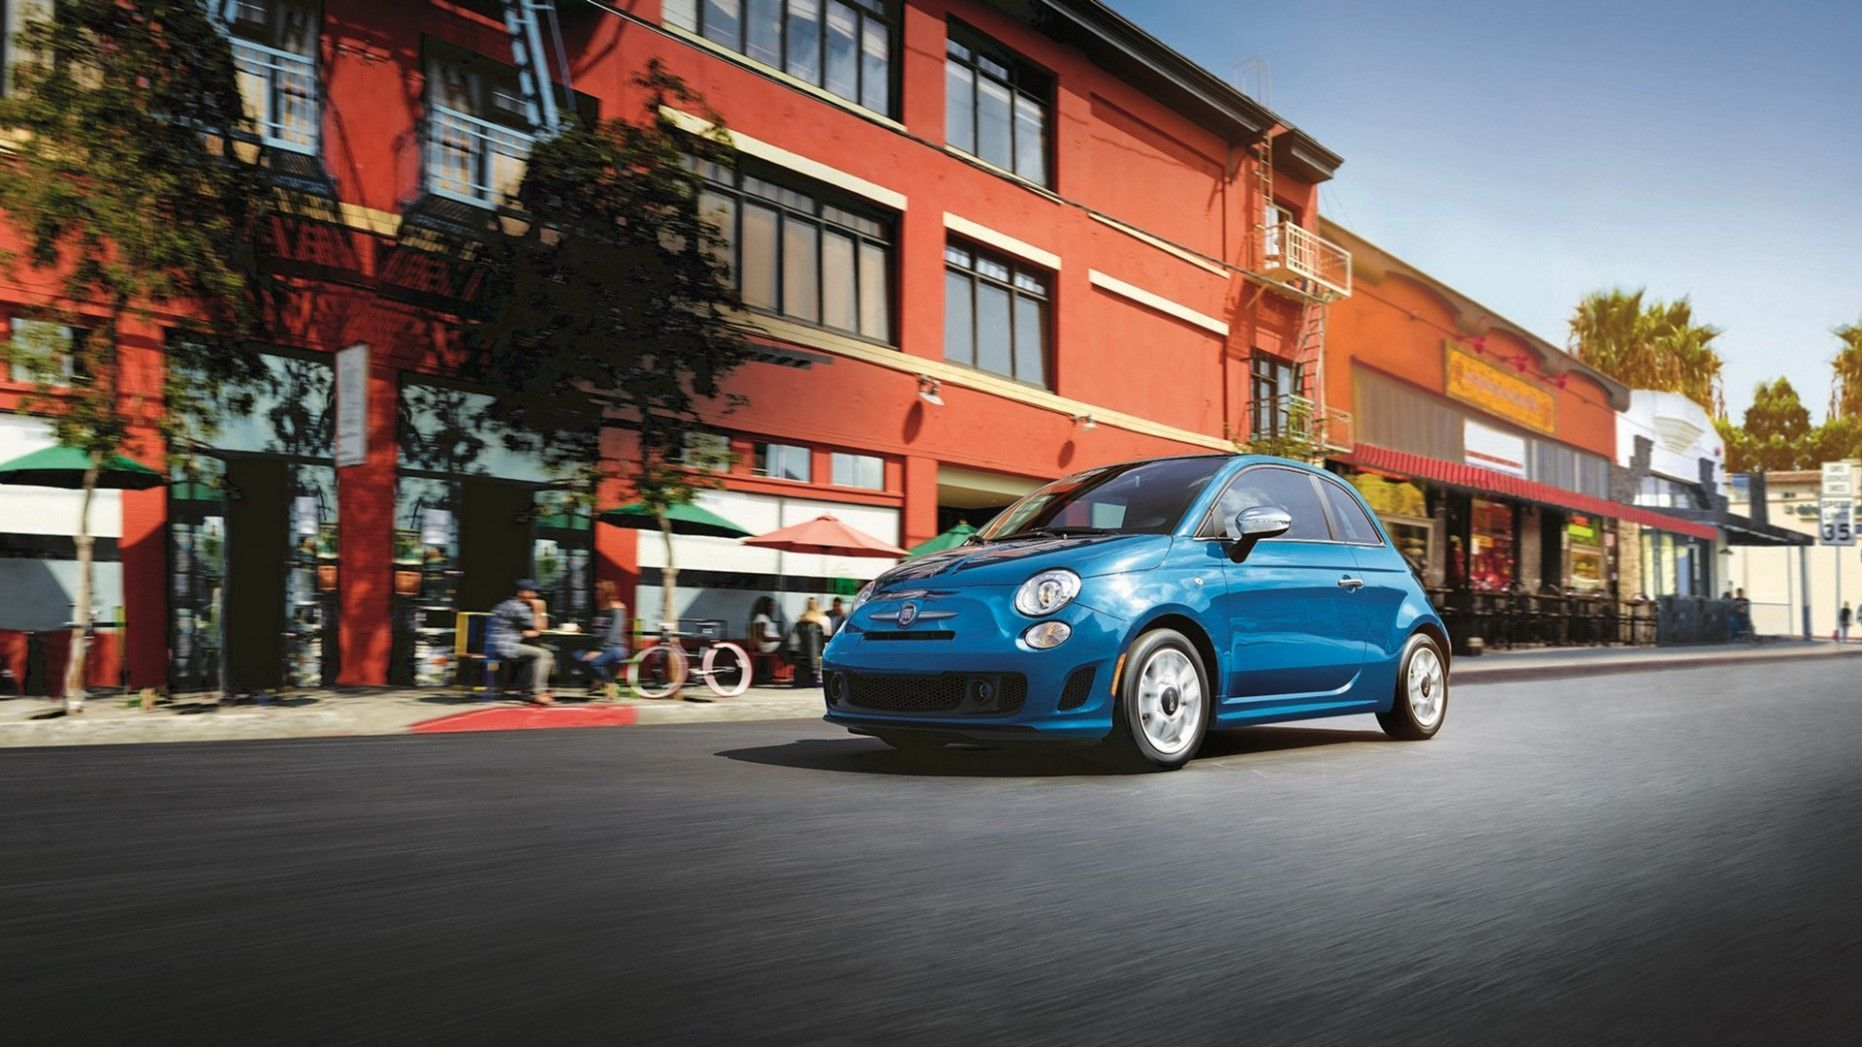 Hottest Pictures The Reason Why Everyone Love 2021 Fiat ...